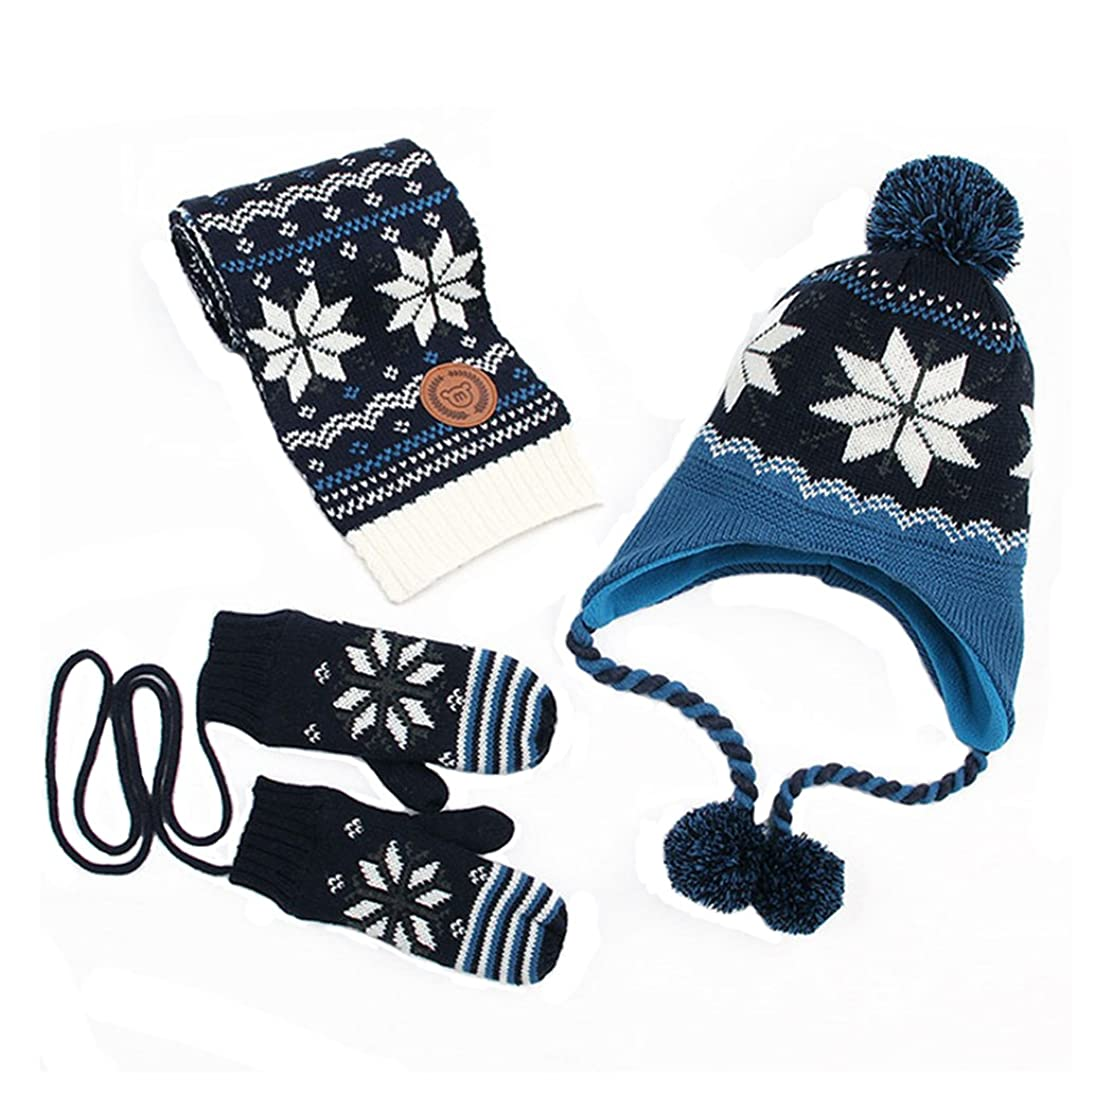 Kisbaby Kid's Fleece-lined Christmas Winter Hat Scarf and Gloves Set with Snowflake Pattern